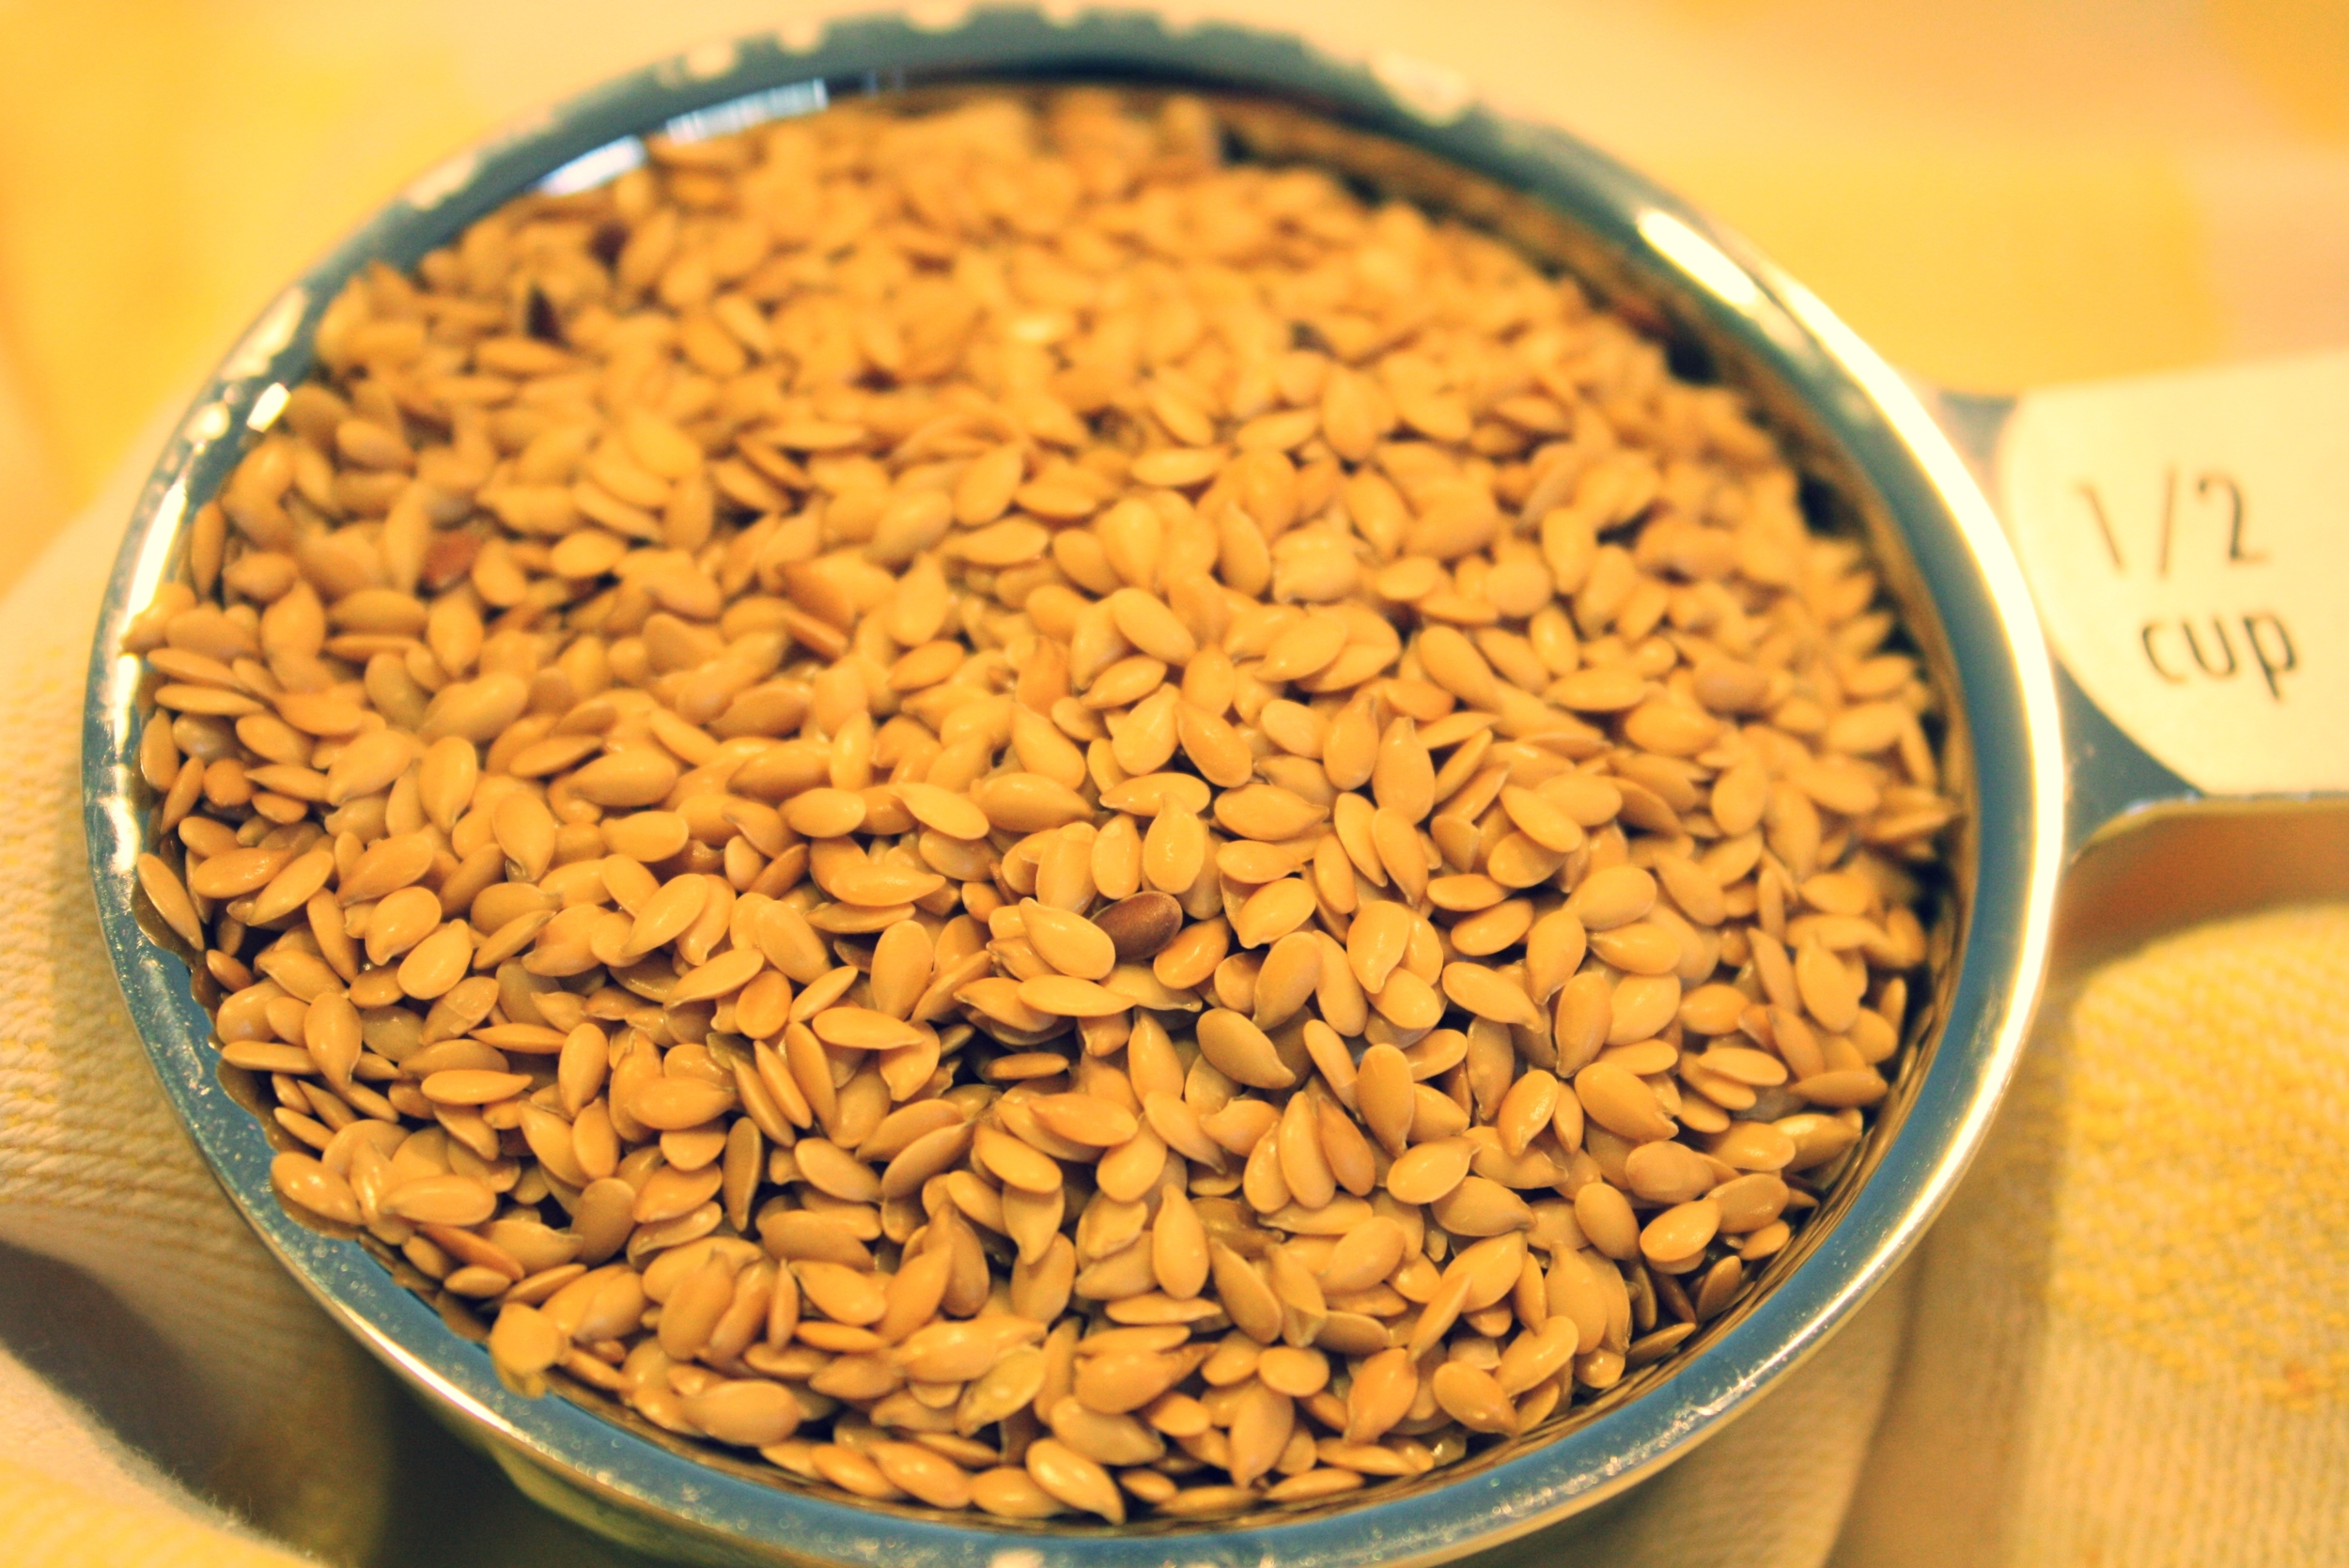 Whole golden flax seed